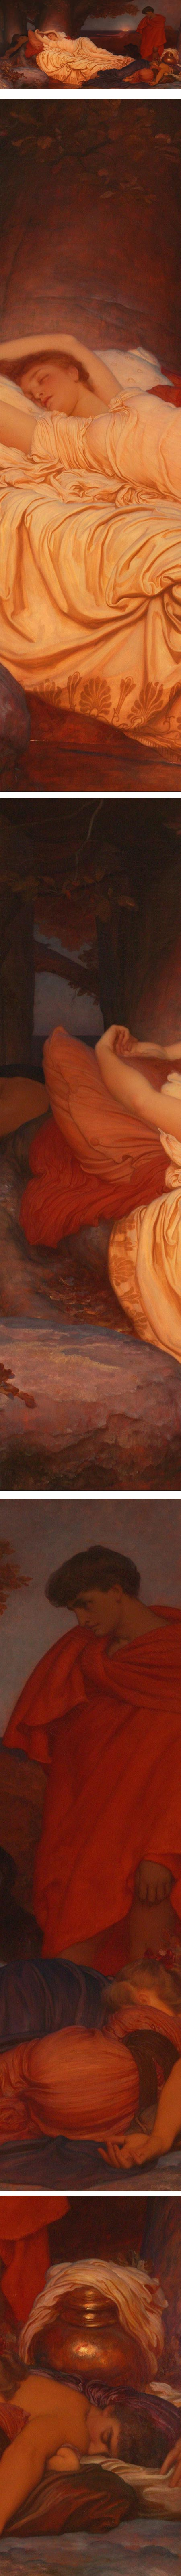 Cymon and Iphigenia, Lord Frederic Leighton